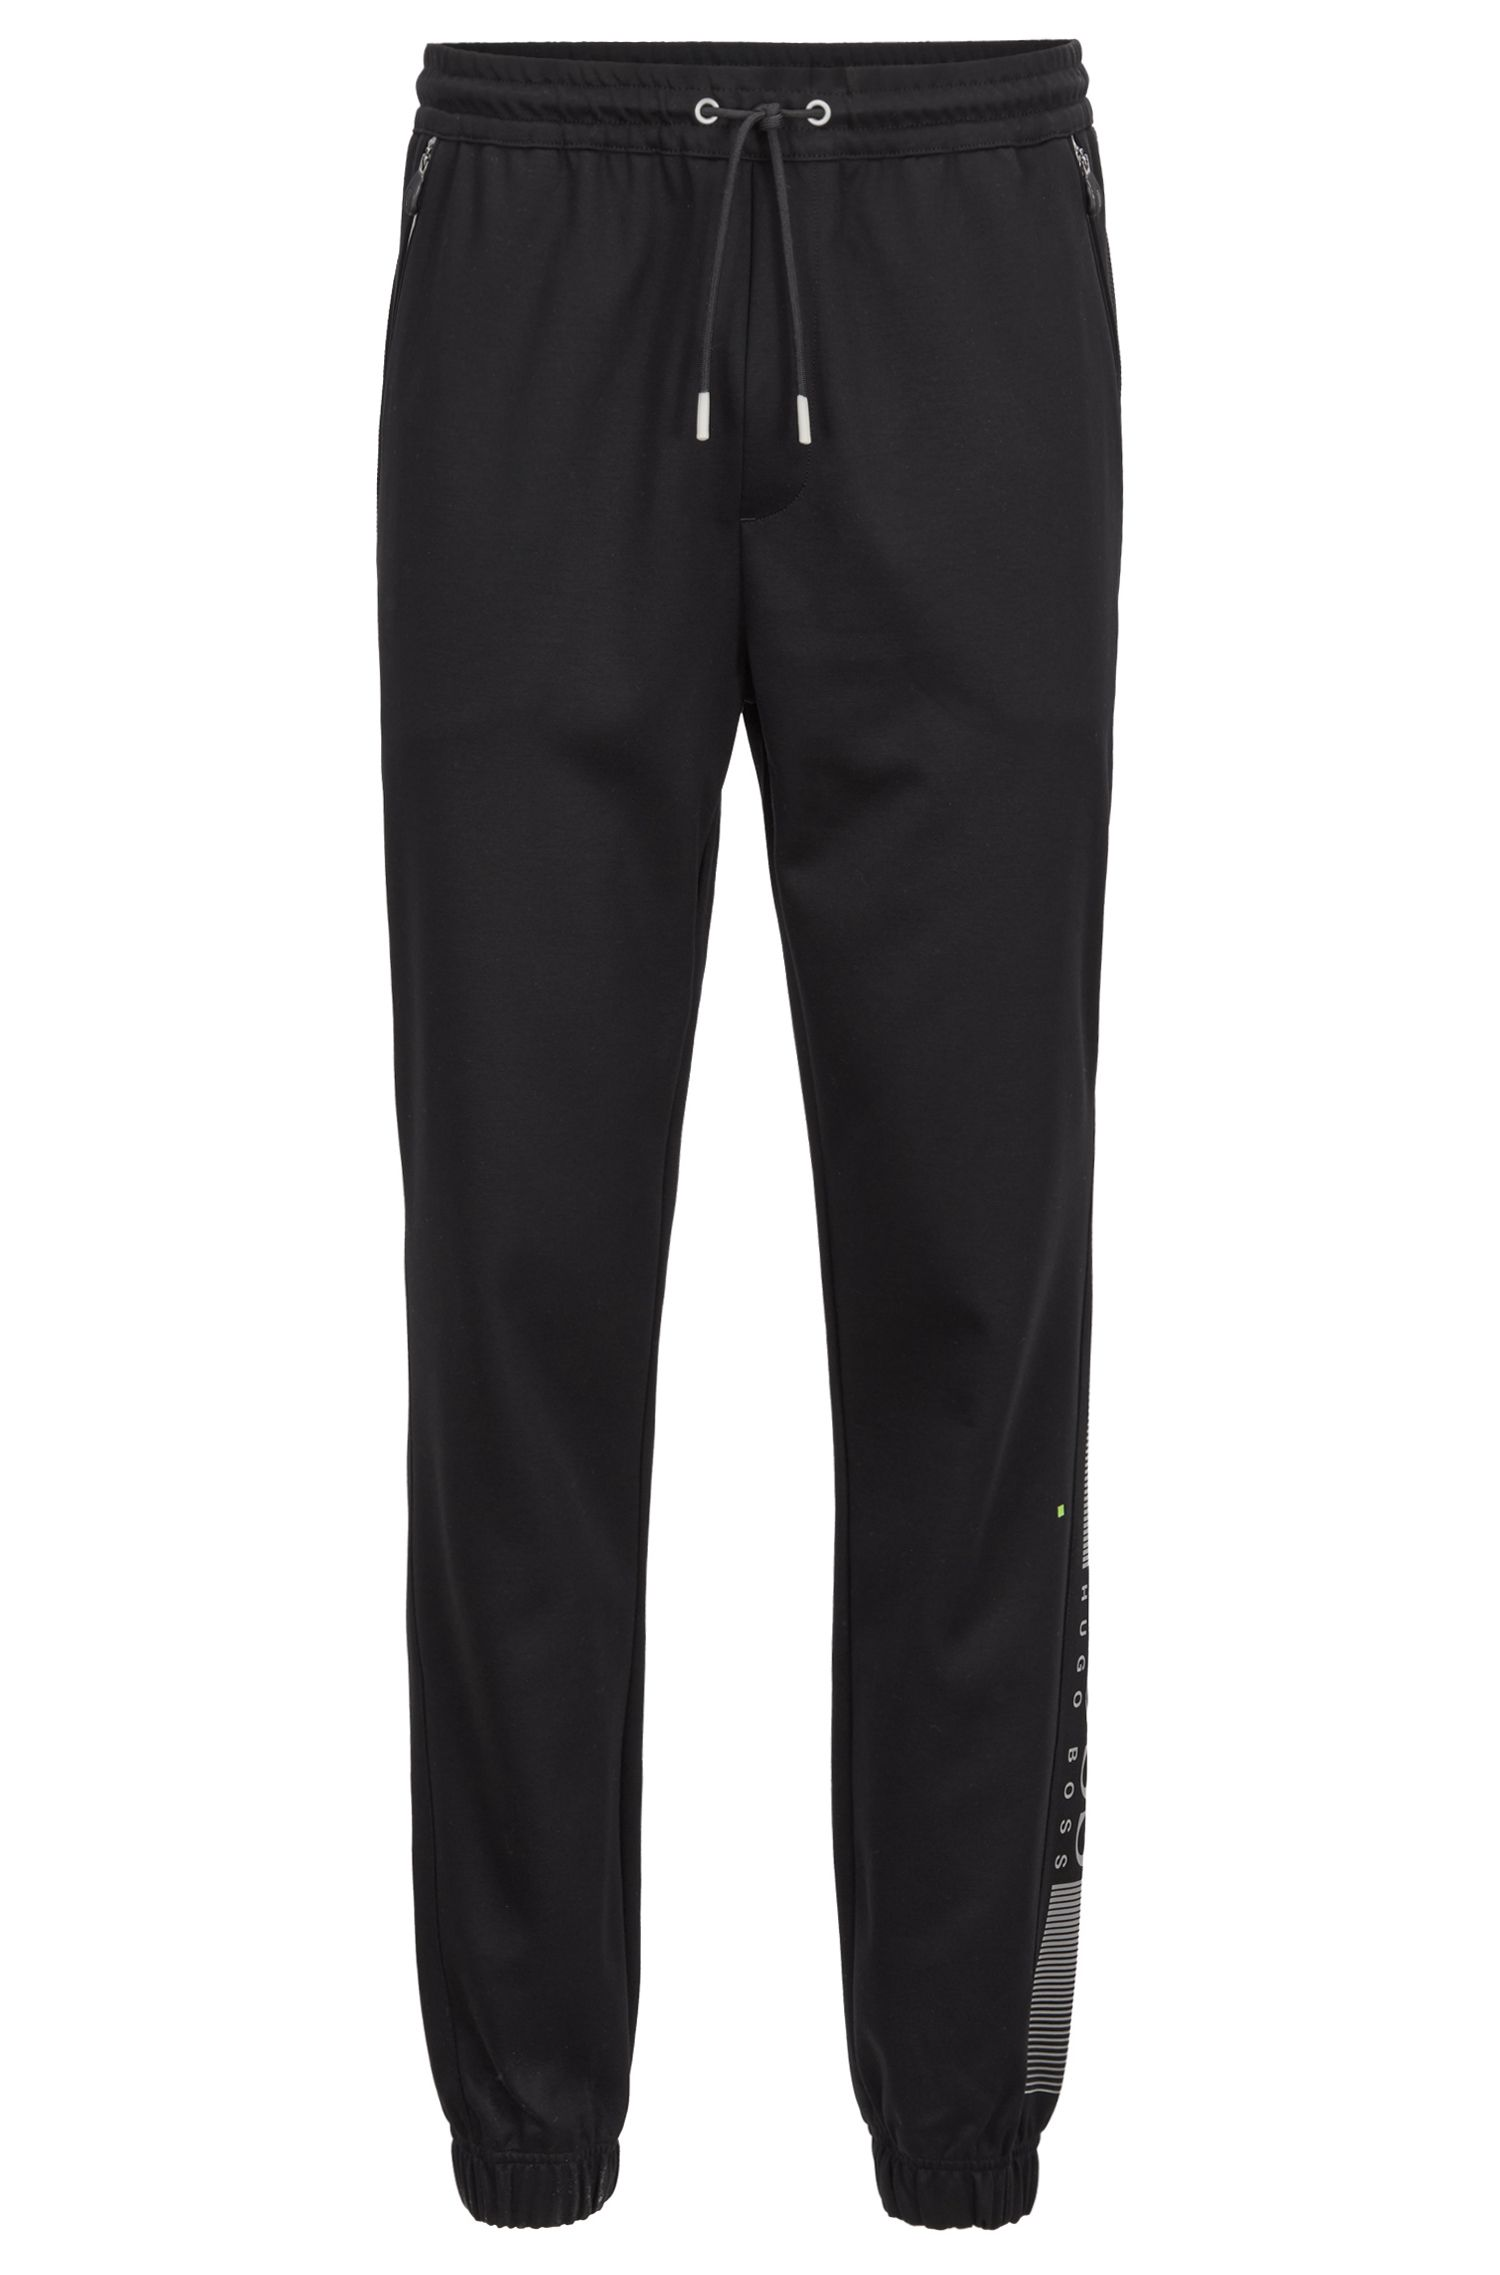 Slim-fit jersey trousers with functional details